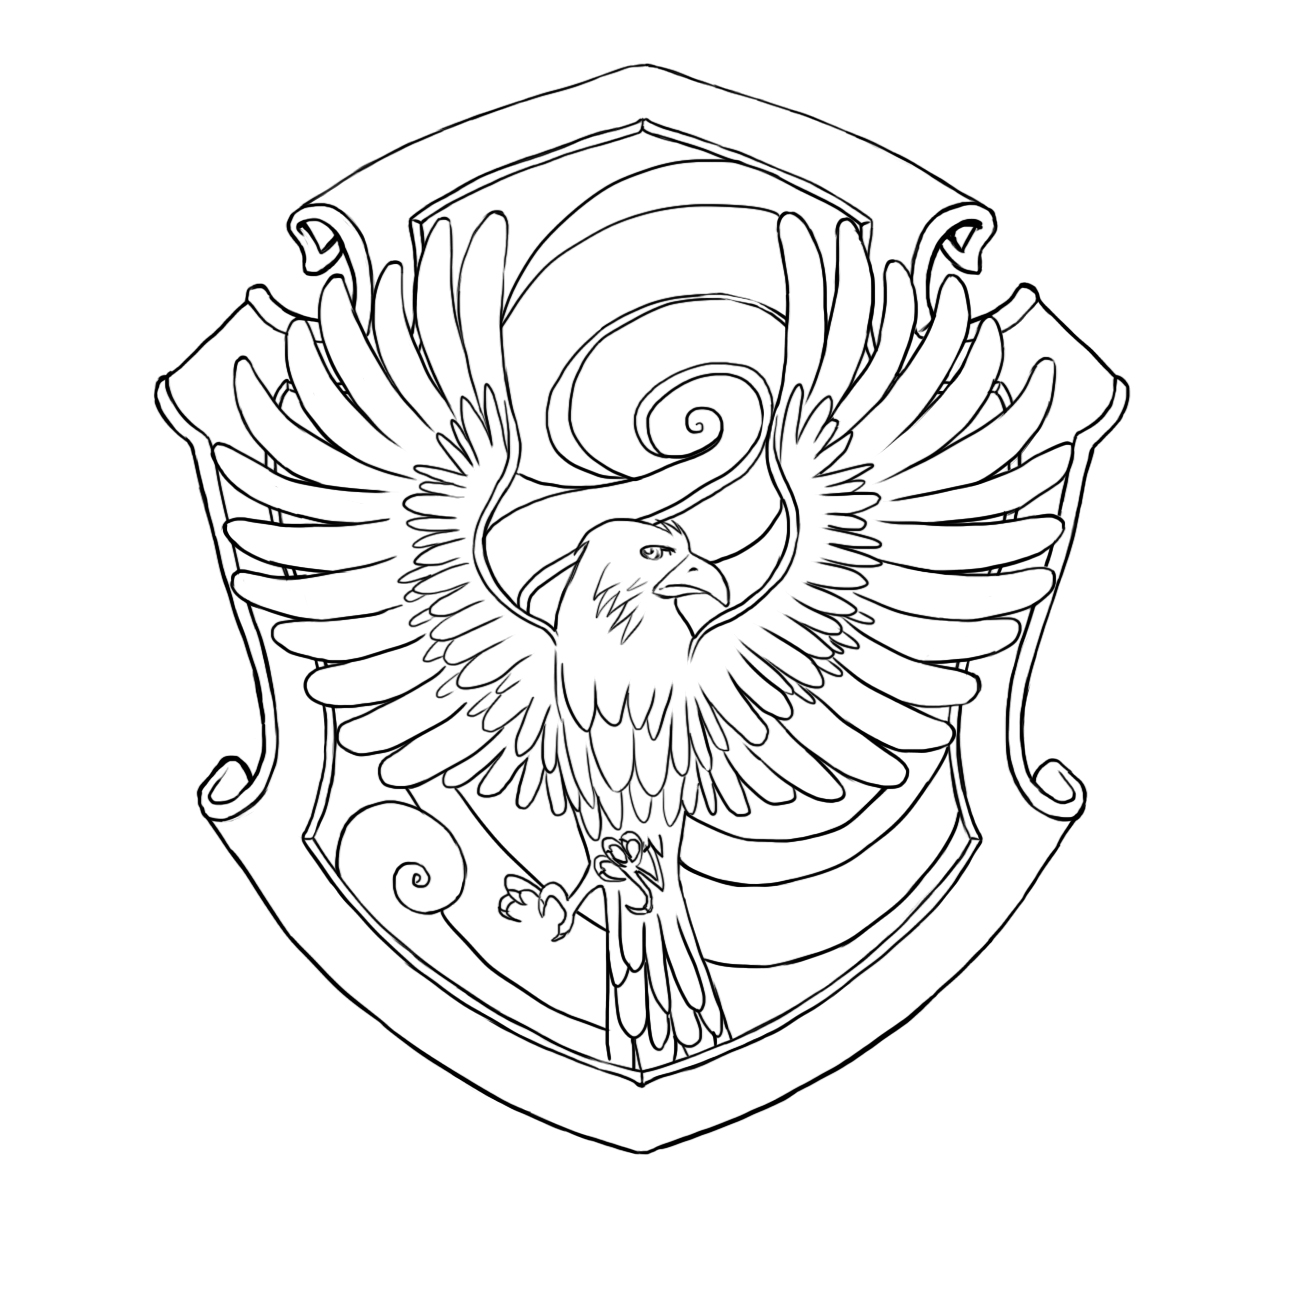 gryffindor crest coloring pages - photo#26